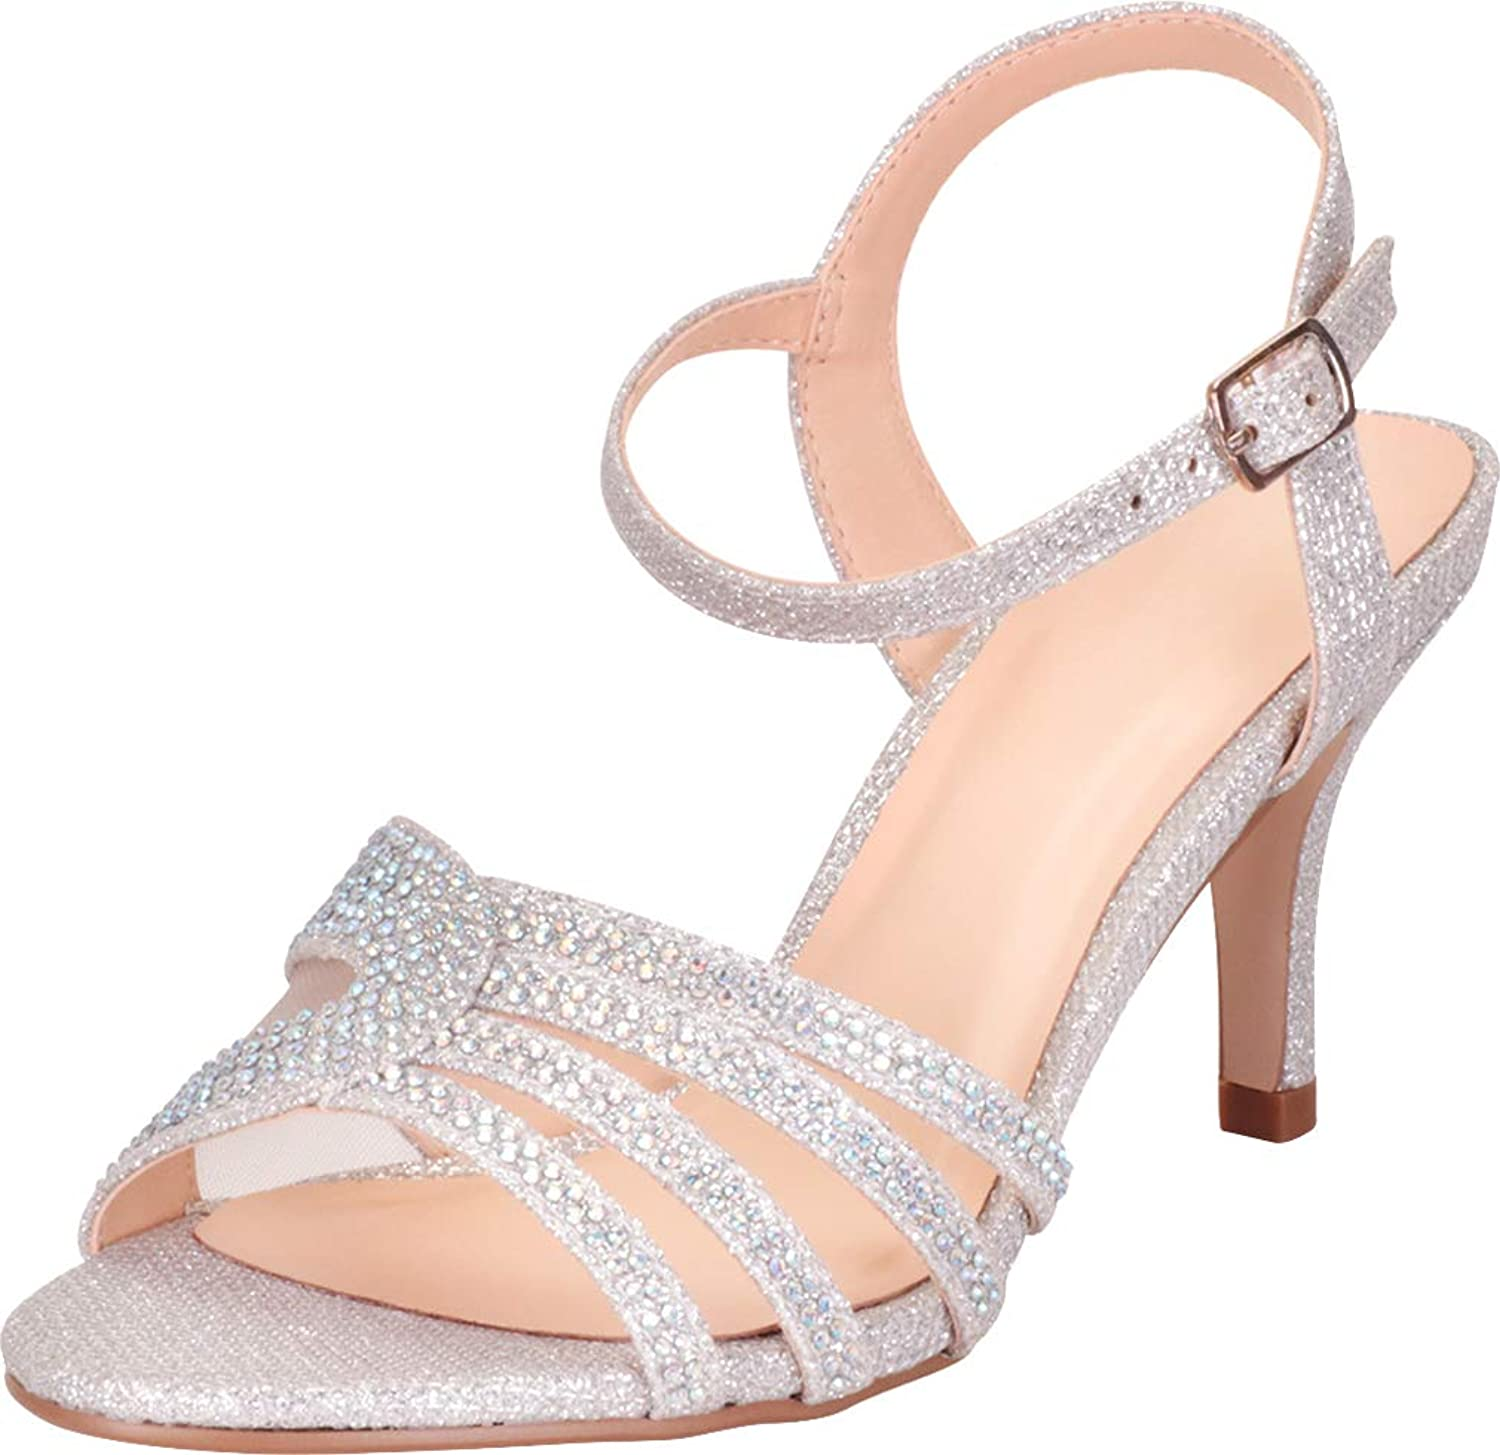 Cambridge Select Women's Open Toe Strappy Crystal Rhinestone Mid Heel Dress Sandal